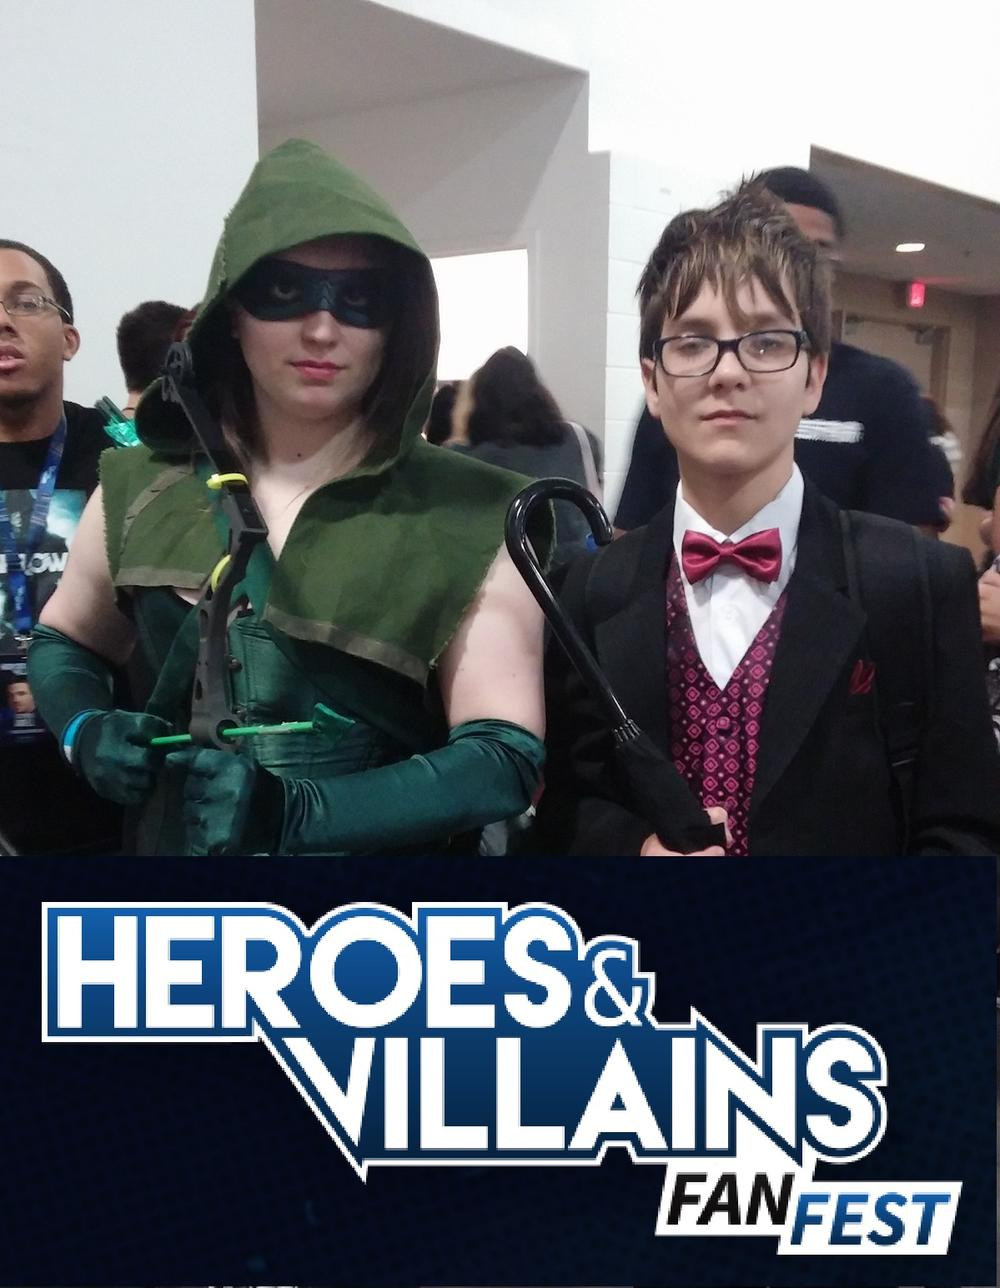 Young cosplayers as 'Green Arrow' and 'Penguin' at Heroes & Villains Fan Fest.